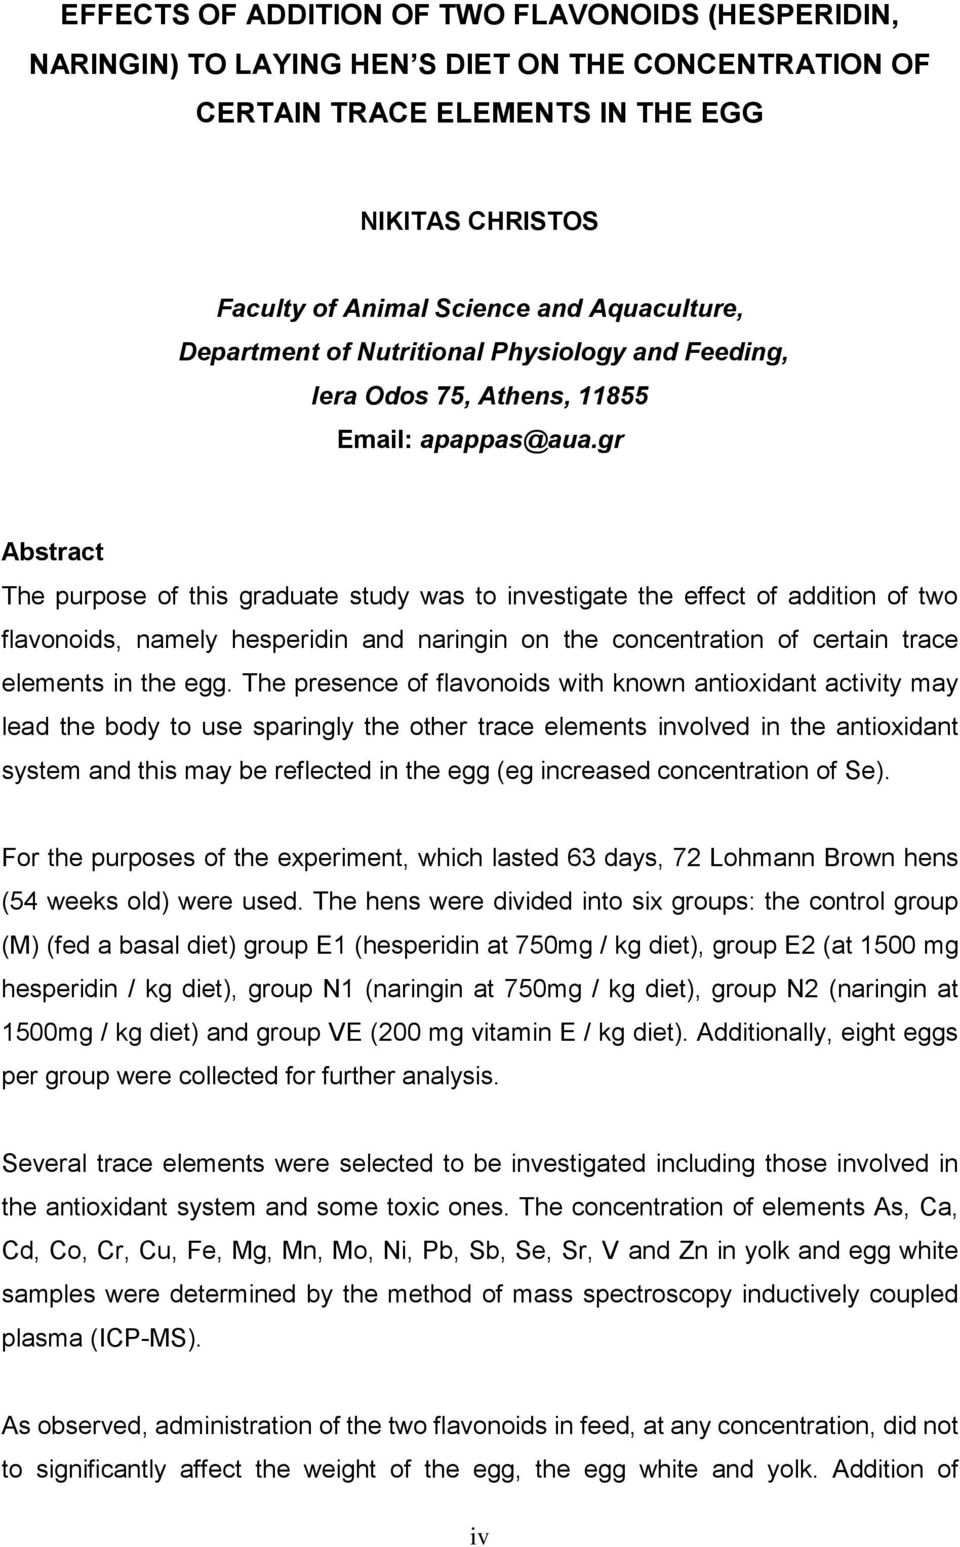 gr Abstract The purpose of this graduate study was to investigate the effect of addition of two flavonoids, namely hesperidin and naringin on the concentration of certain trace elements in the egg.